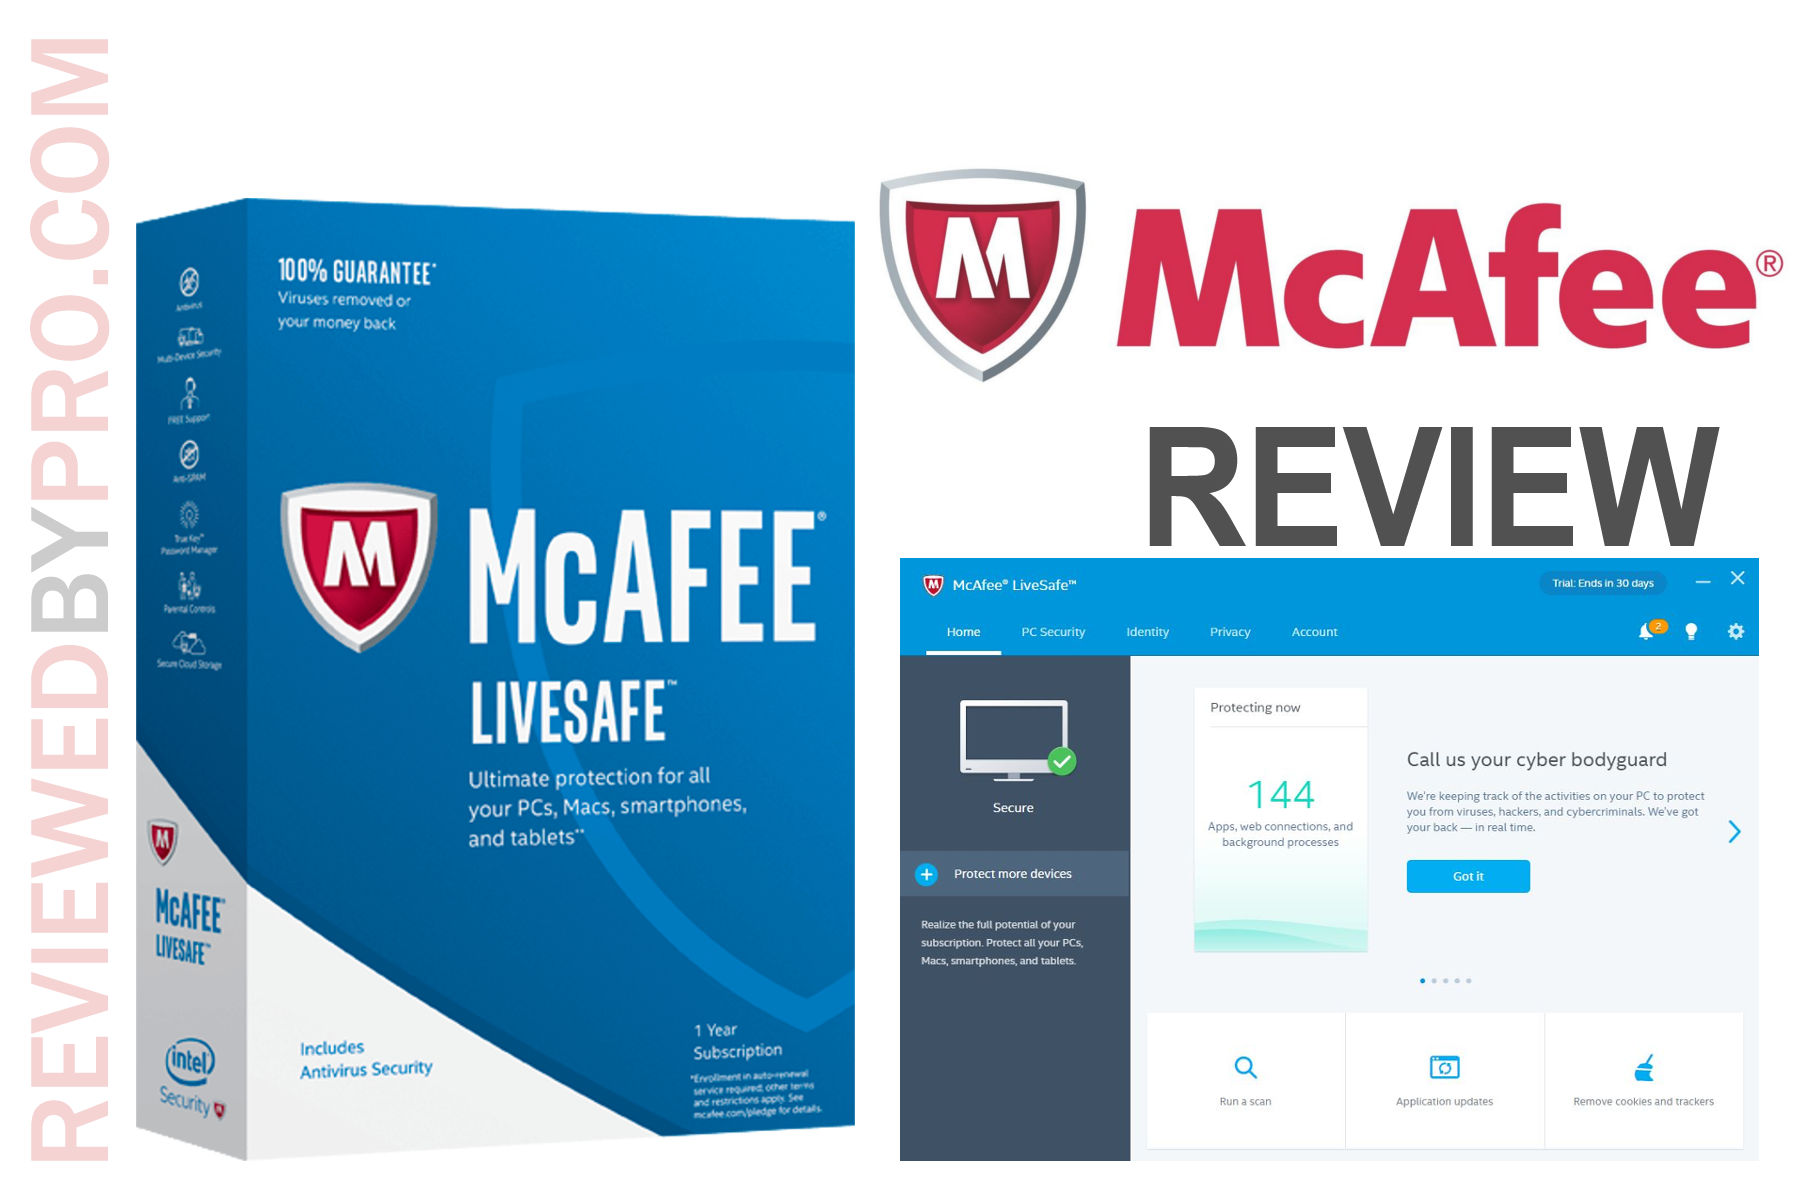 McAfee LiveSafe review